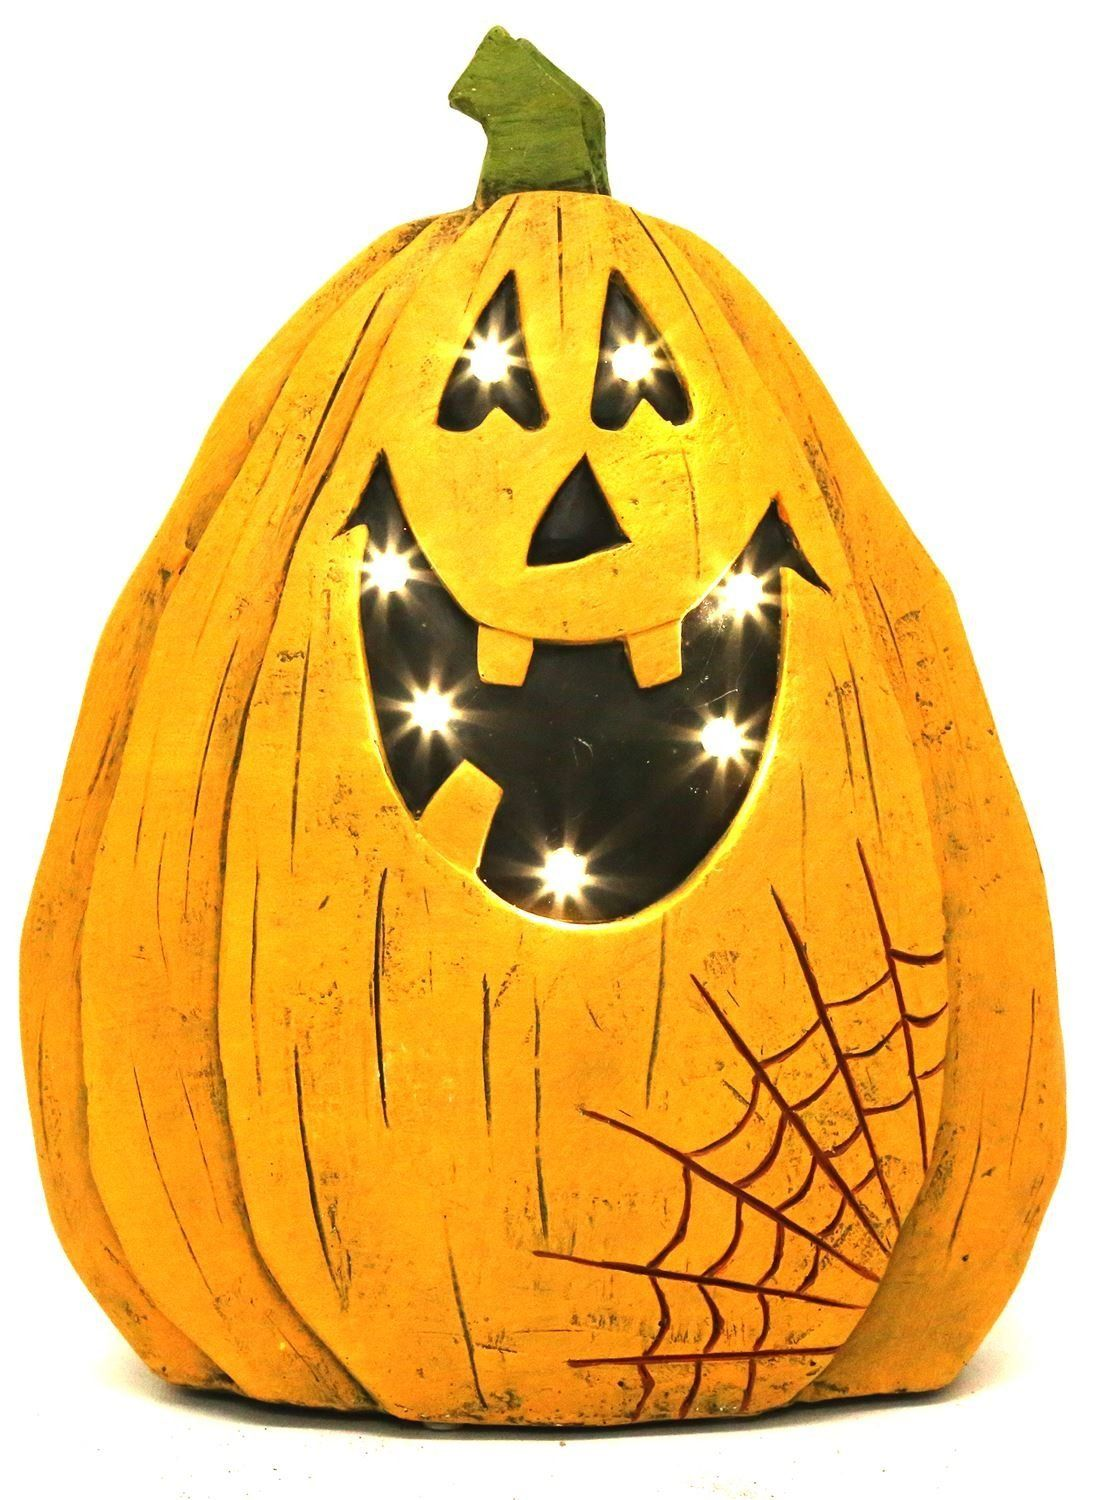 Light Up Battery Operated LED Jack O Lantern Pumpkin